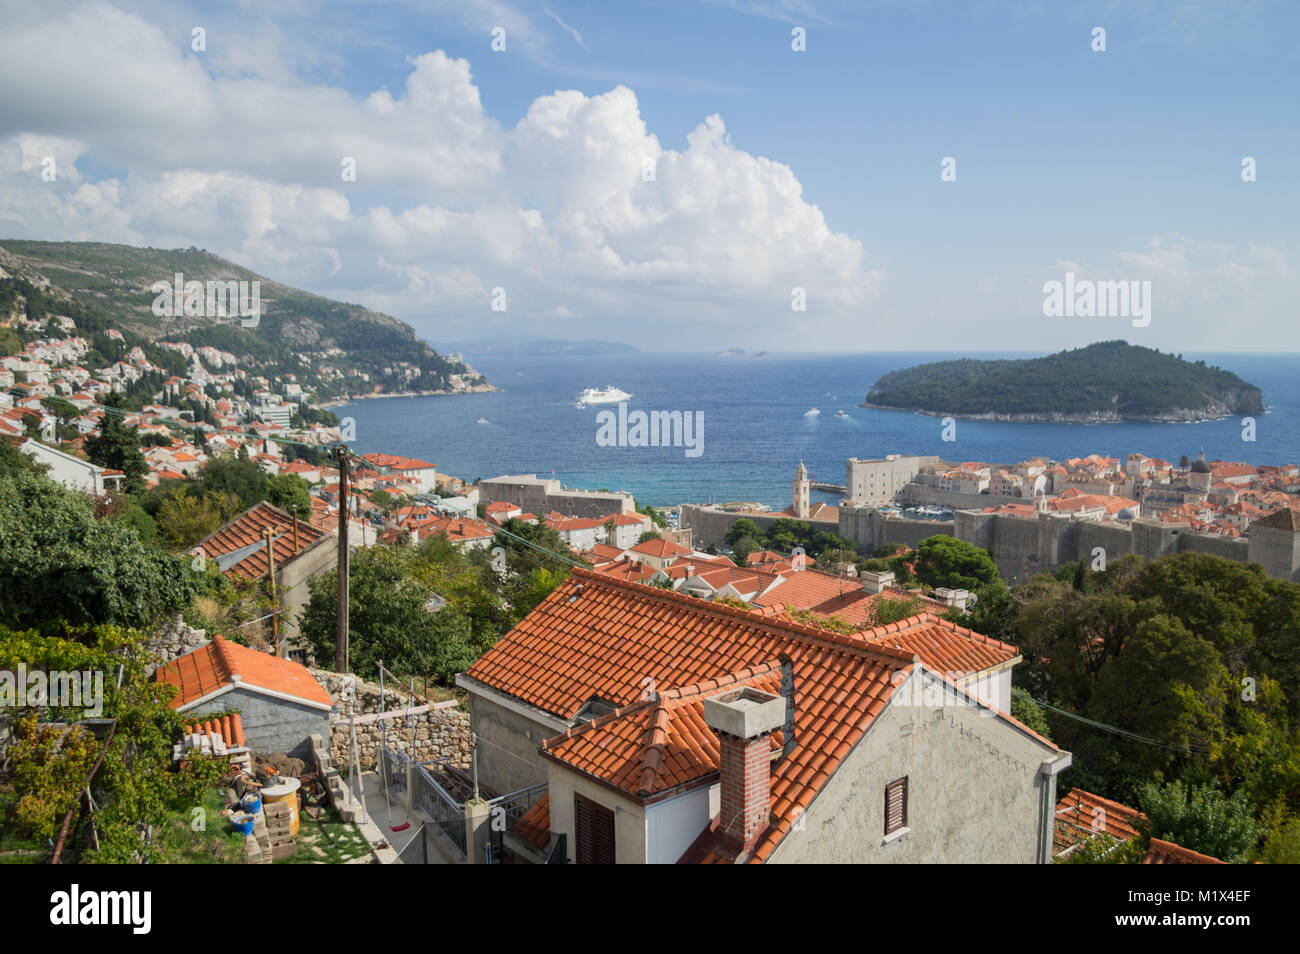 View onto Lokrum Island and Old Town of Dubrovnik from Lookout Point, Croatia - Stock Image